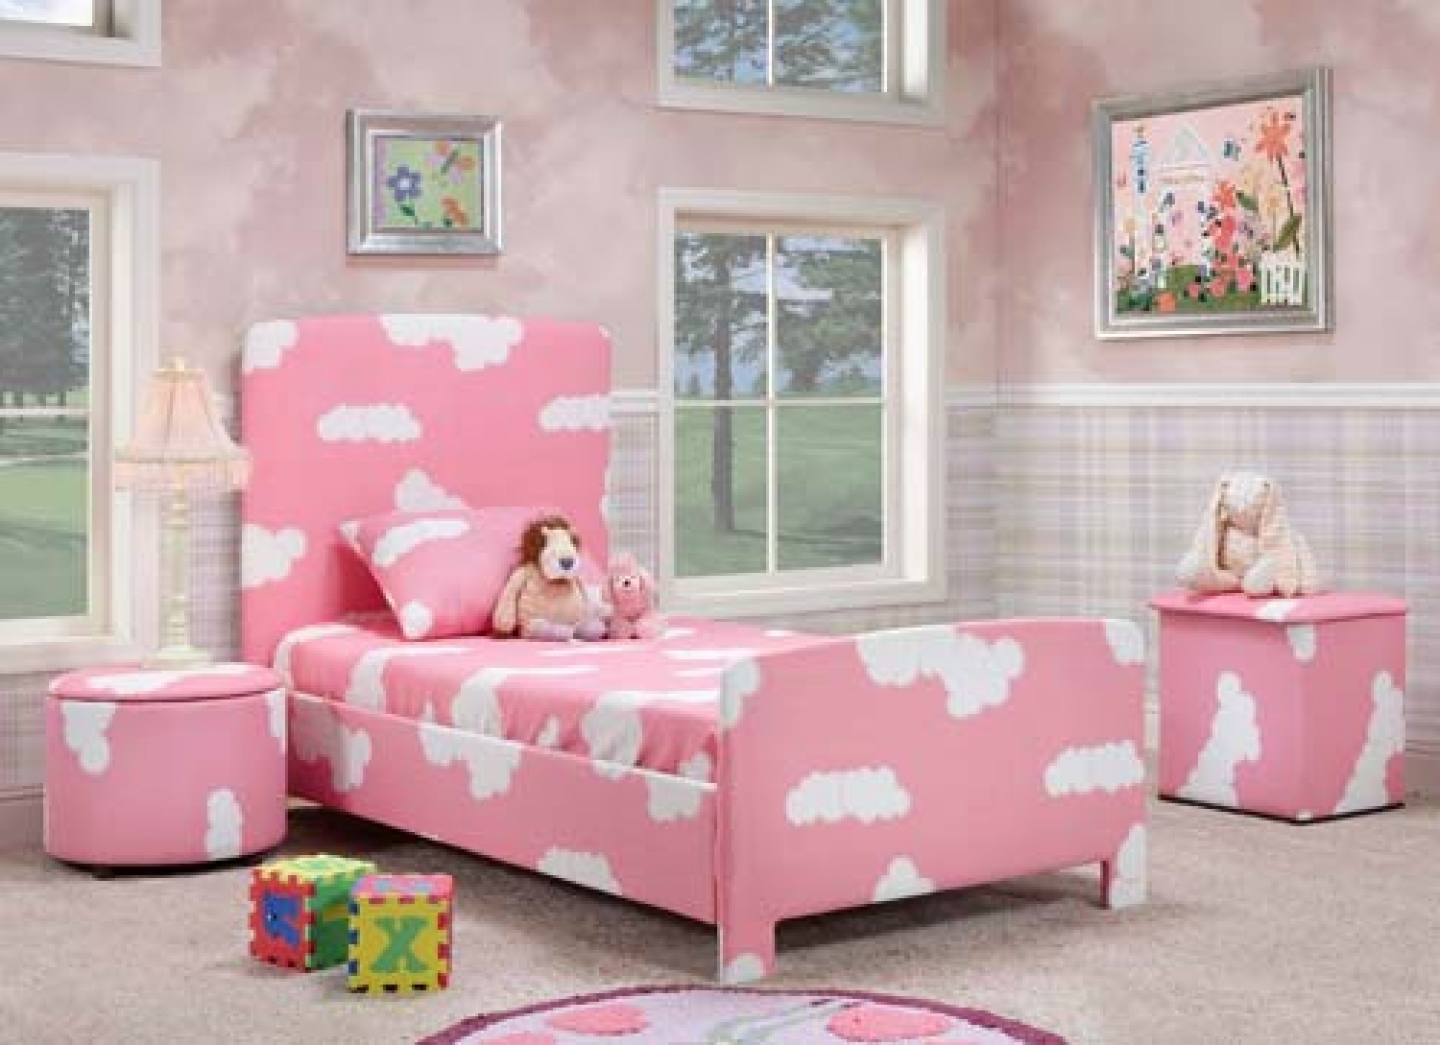 Pink Bedrooms For Girls In Low Budget (Image 6 of 10)